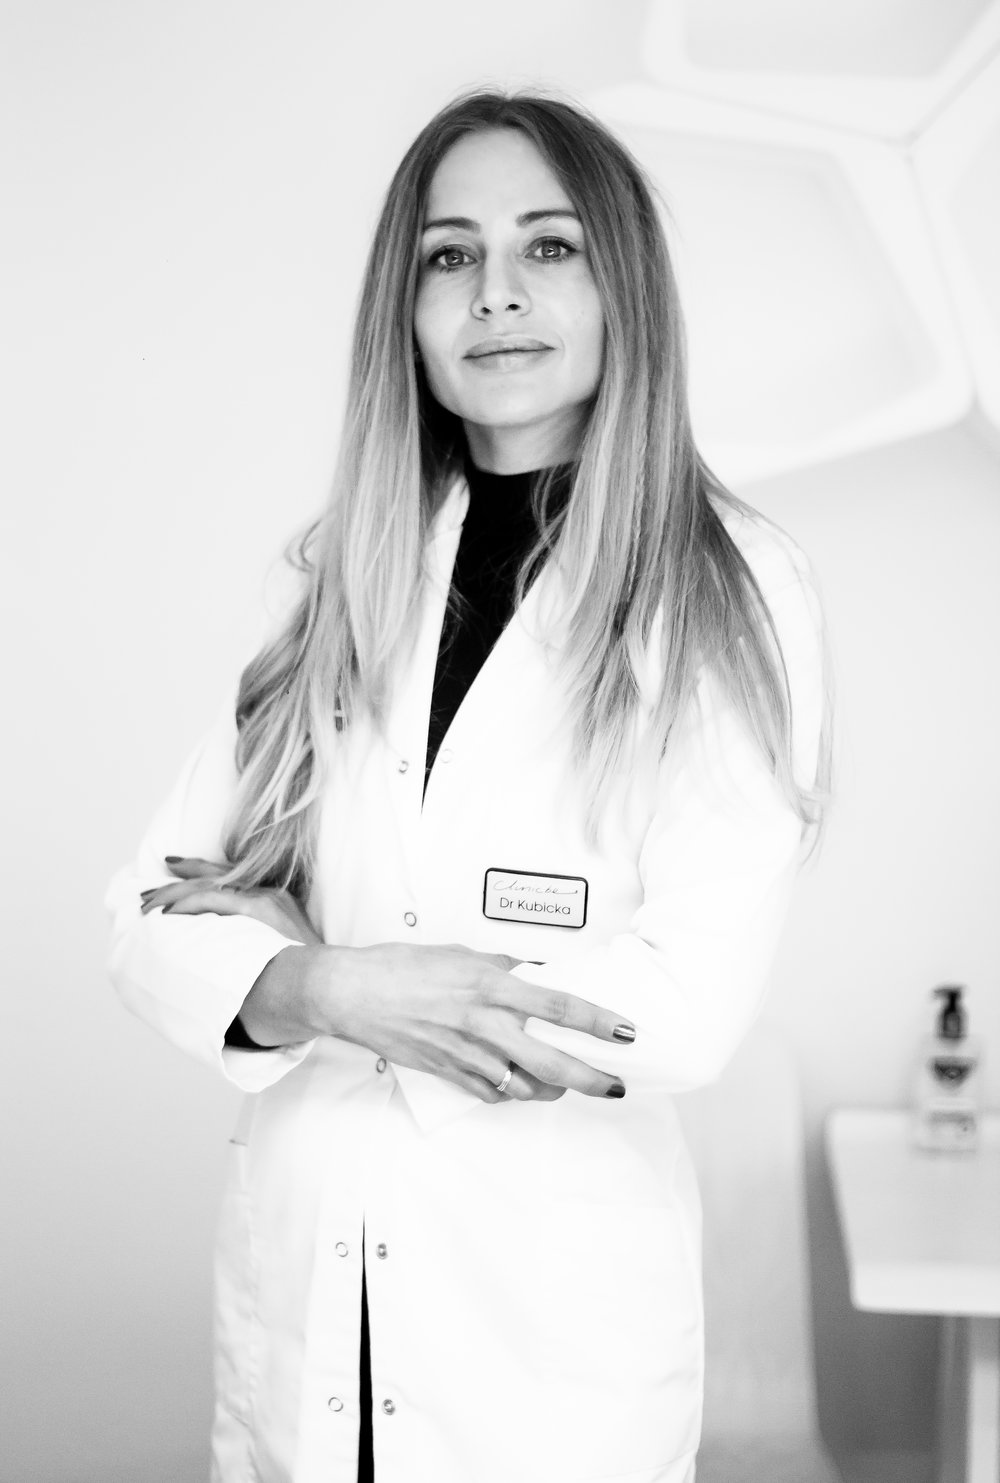 """Get rid of oil. - """"Cleansing your skin is necessary to remove heavy make-up and toxins coming through the pores. Our daily use Be Purified Cleanser is an essential mix of glycolic, citric and a small amount of salicylic acid to remove impurities and excess oil on the surface of the skin.""""Dr Barbara KubickaAesthetic Doctor"""